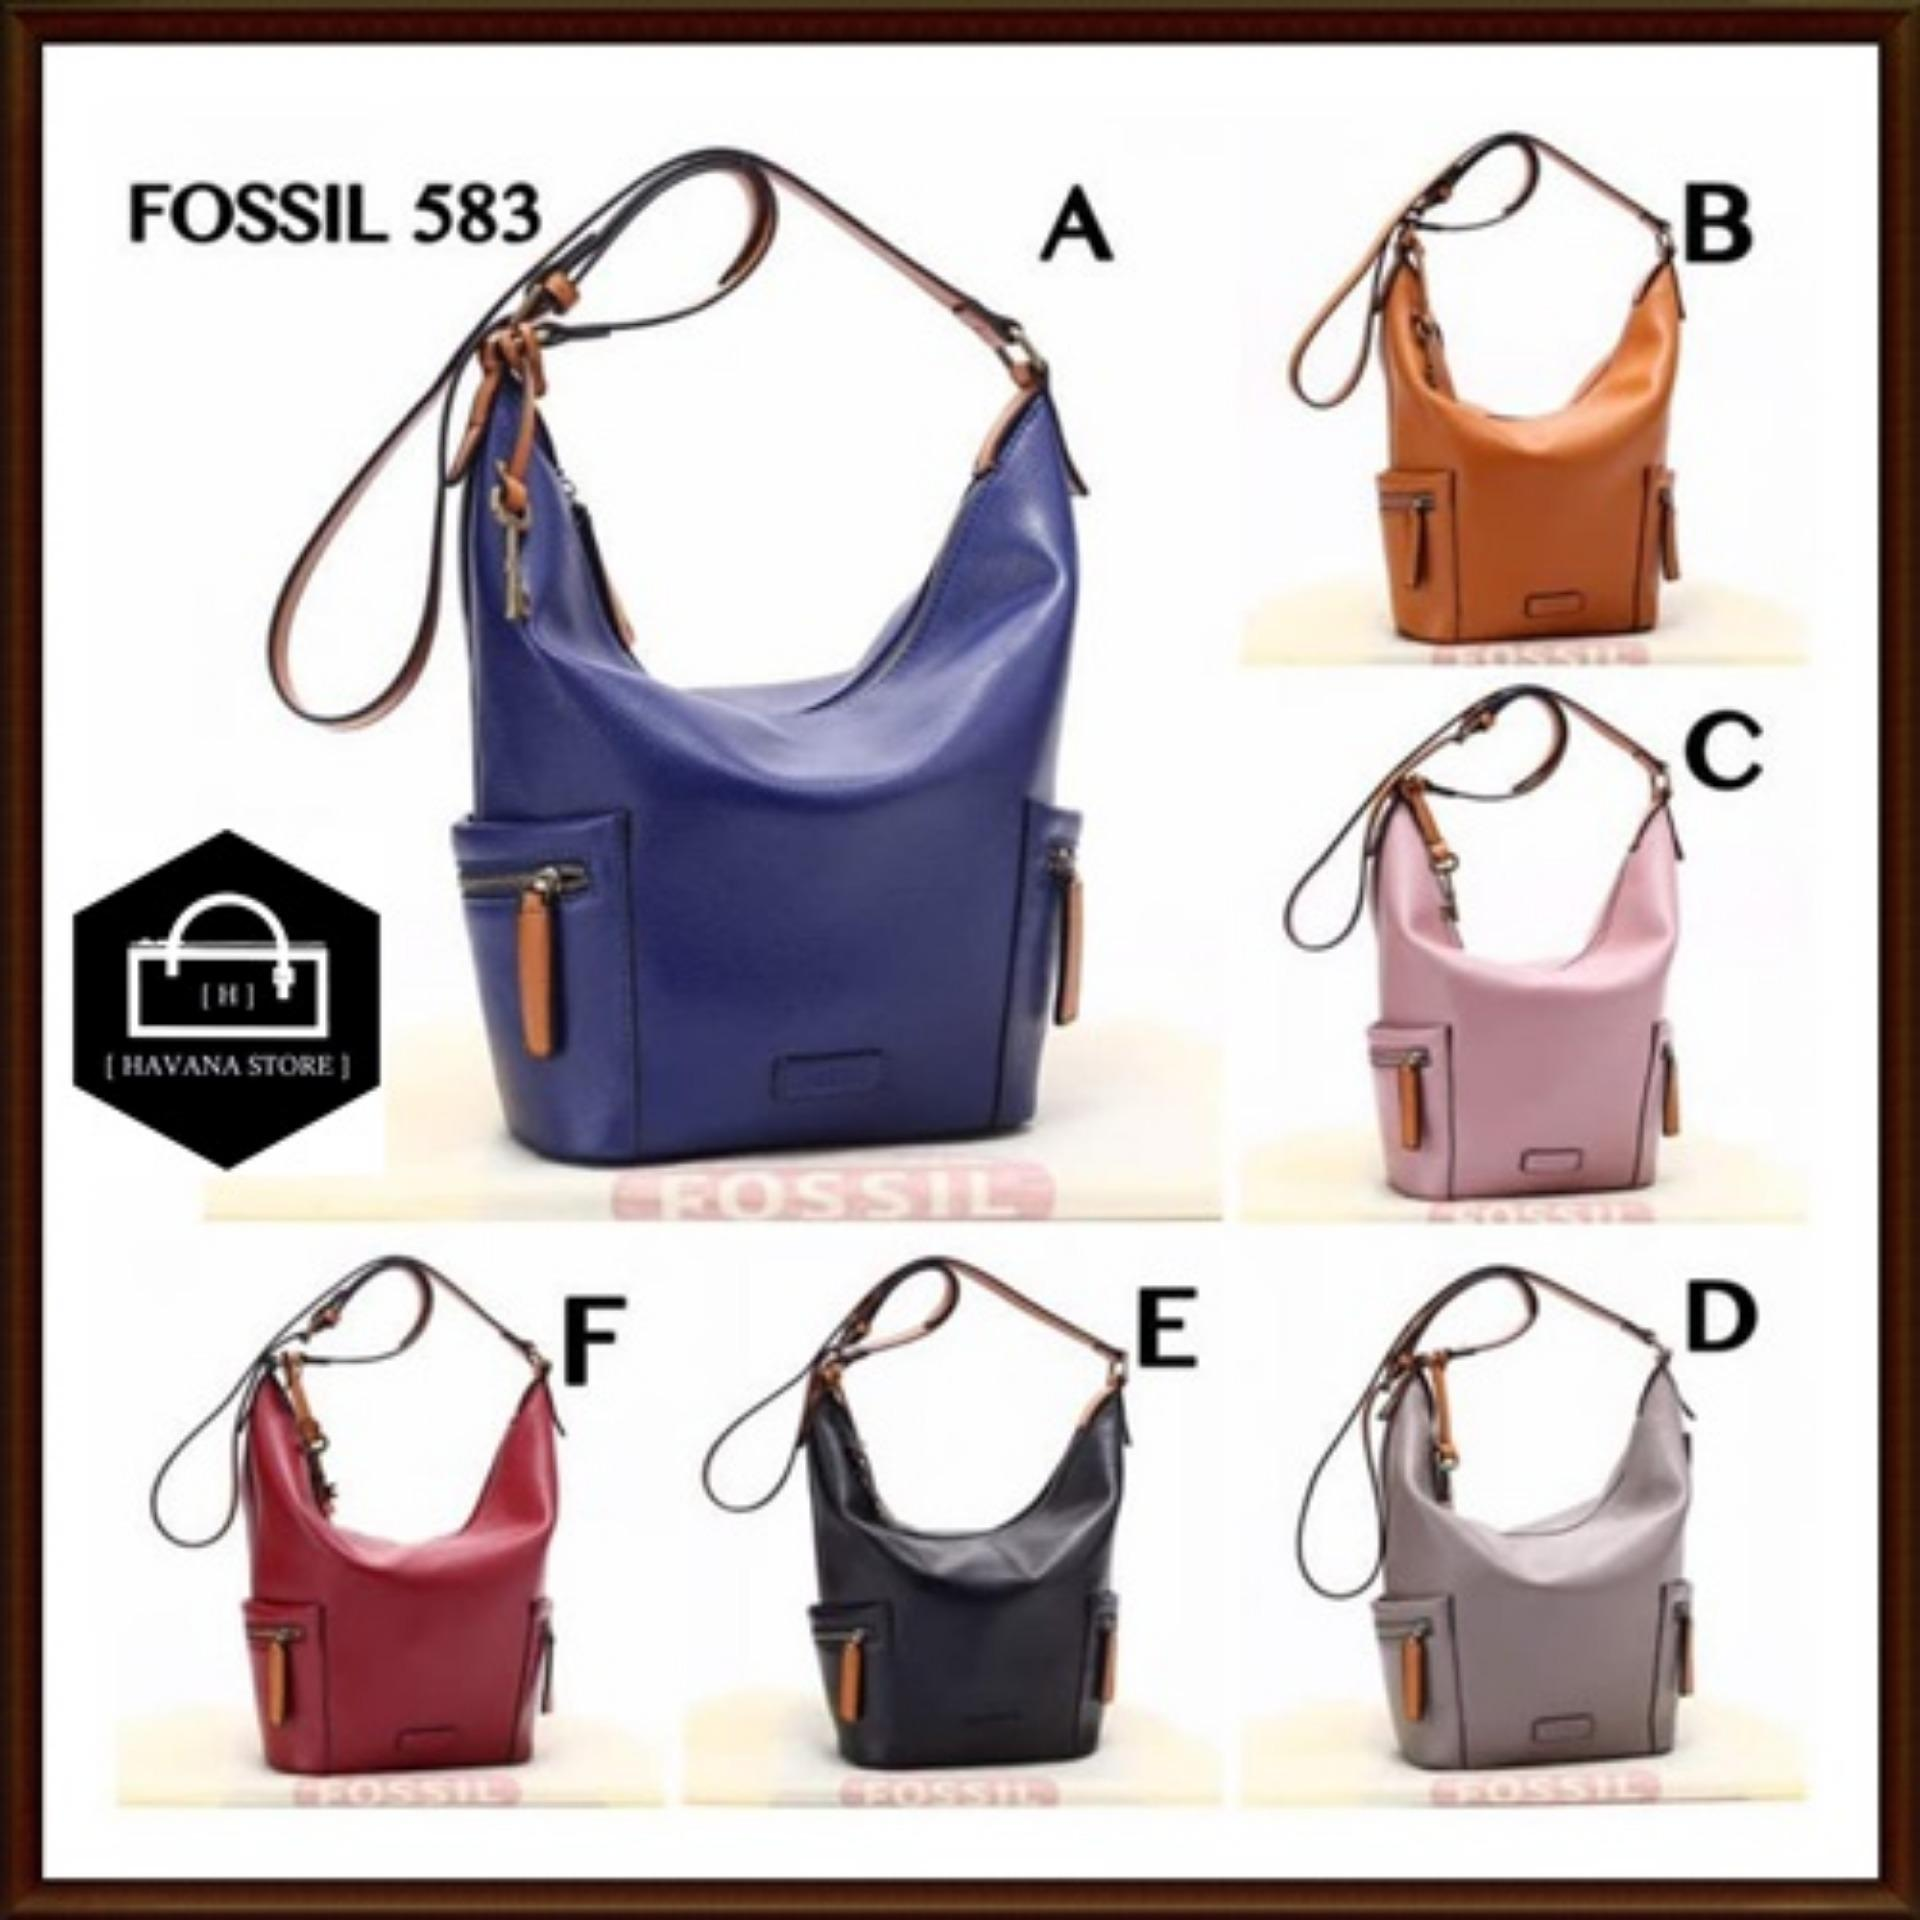 Buy Sell Cheapest Fossil Emerson Hobo Best Quality Product Deals Satchel In Seaglass Tas Togo Semi Premium 583 A165 Bag Branded Mirror